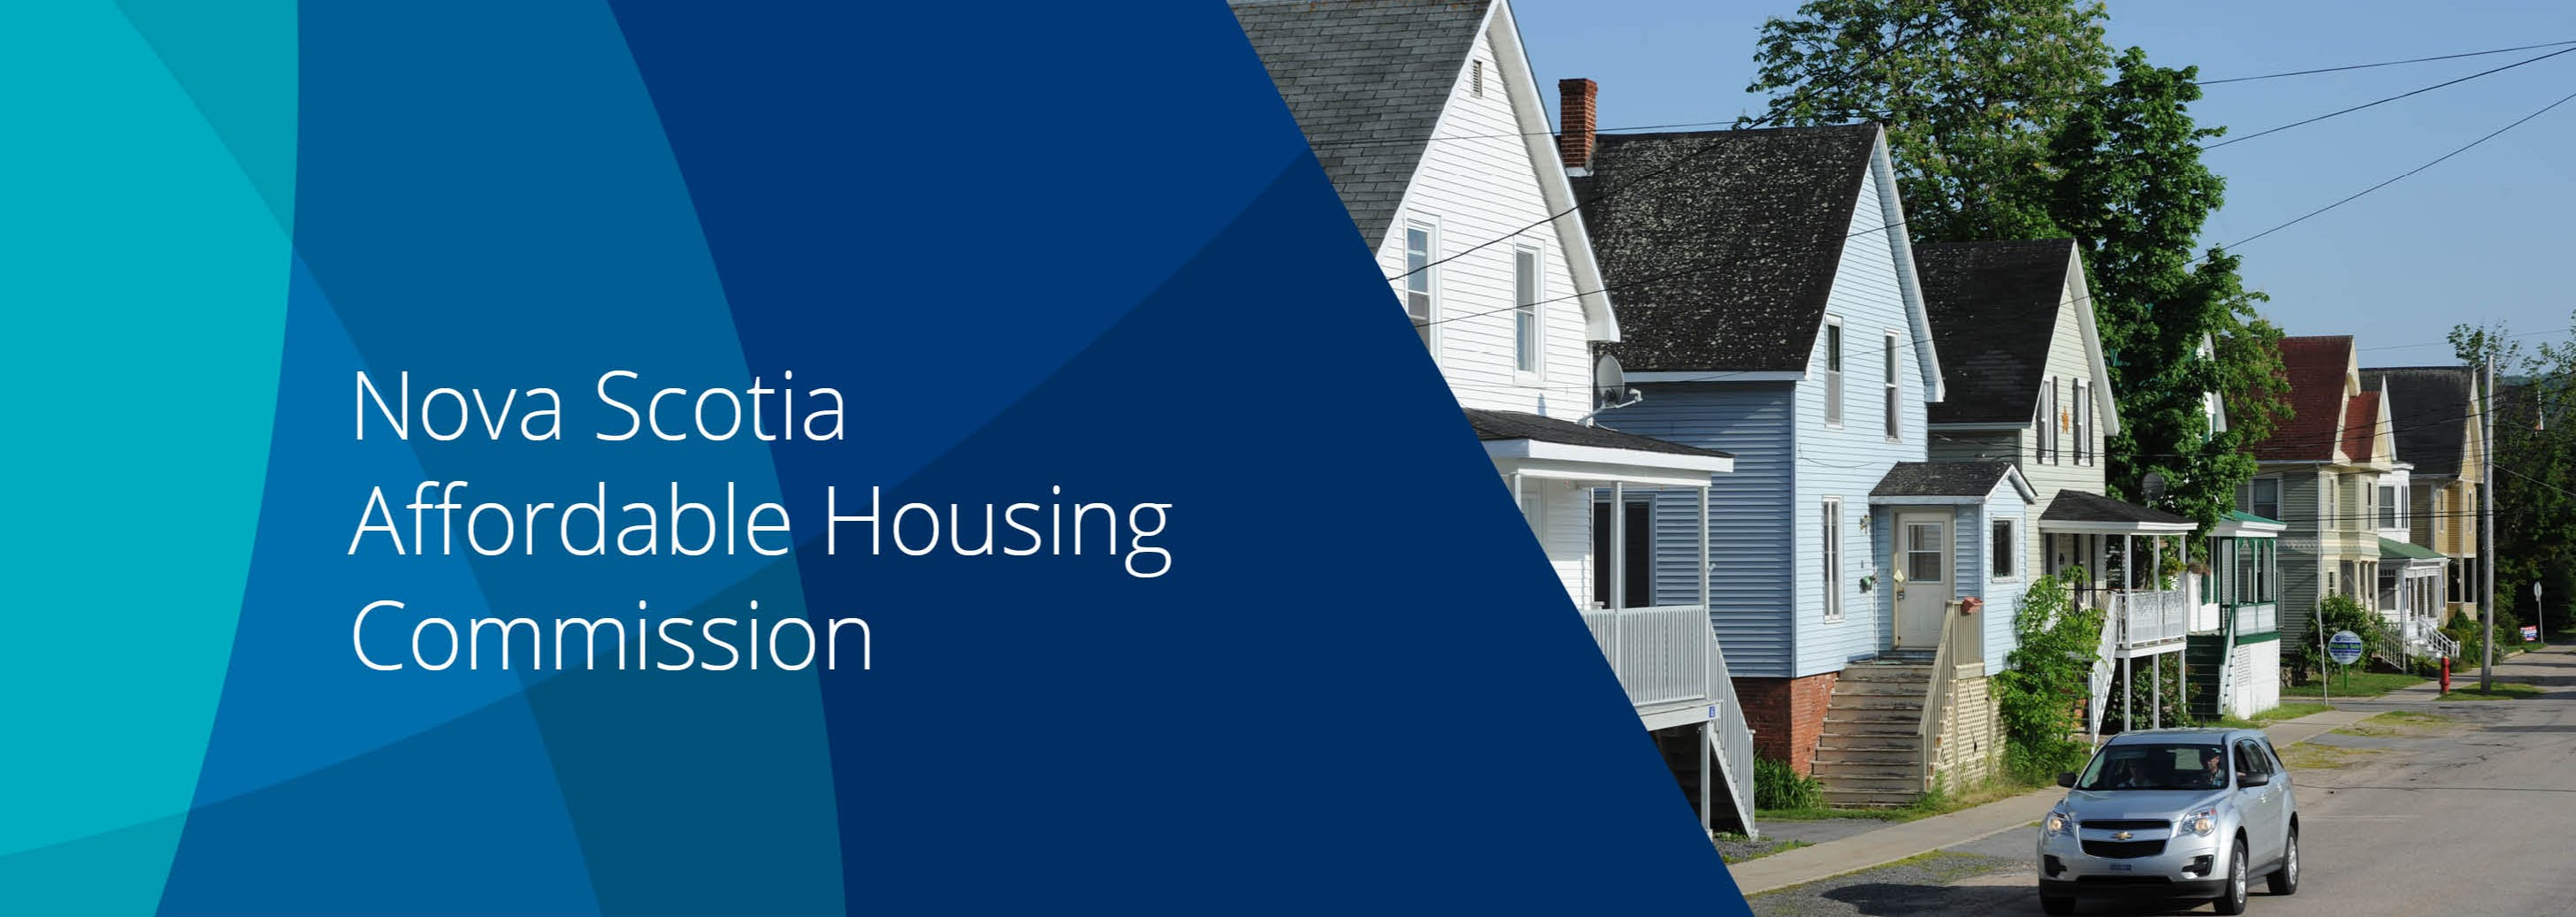 NS Affordable Housing Commission Banner